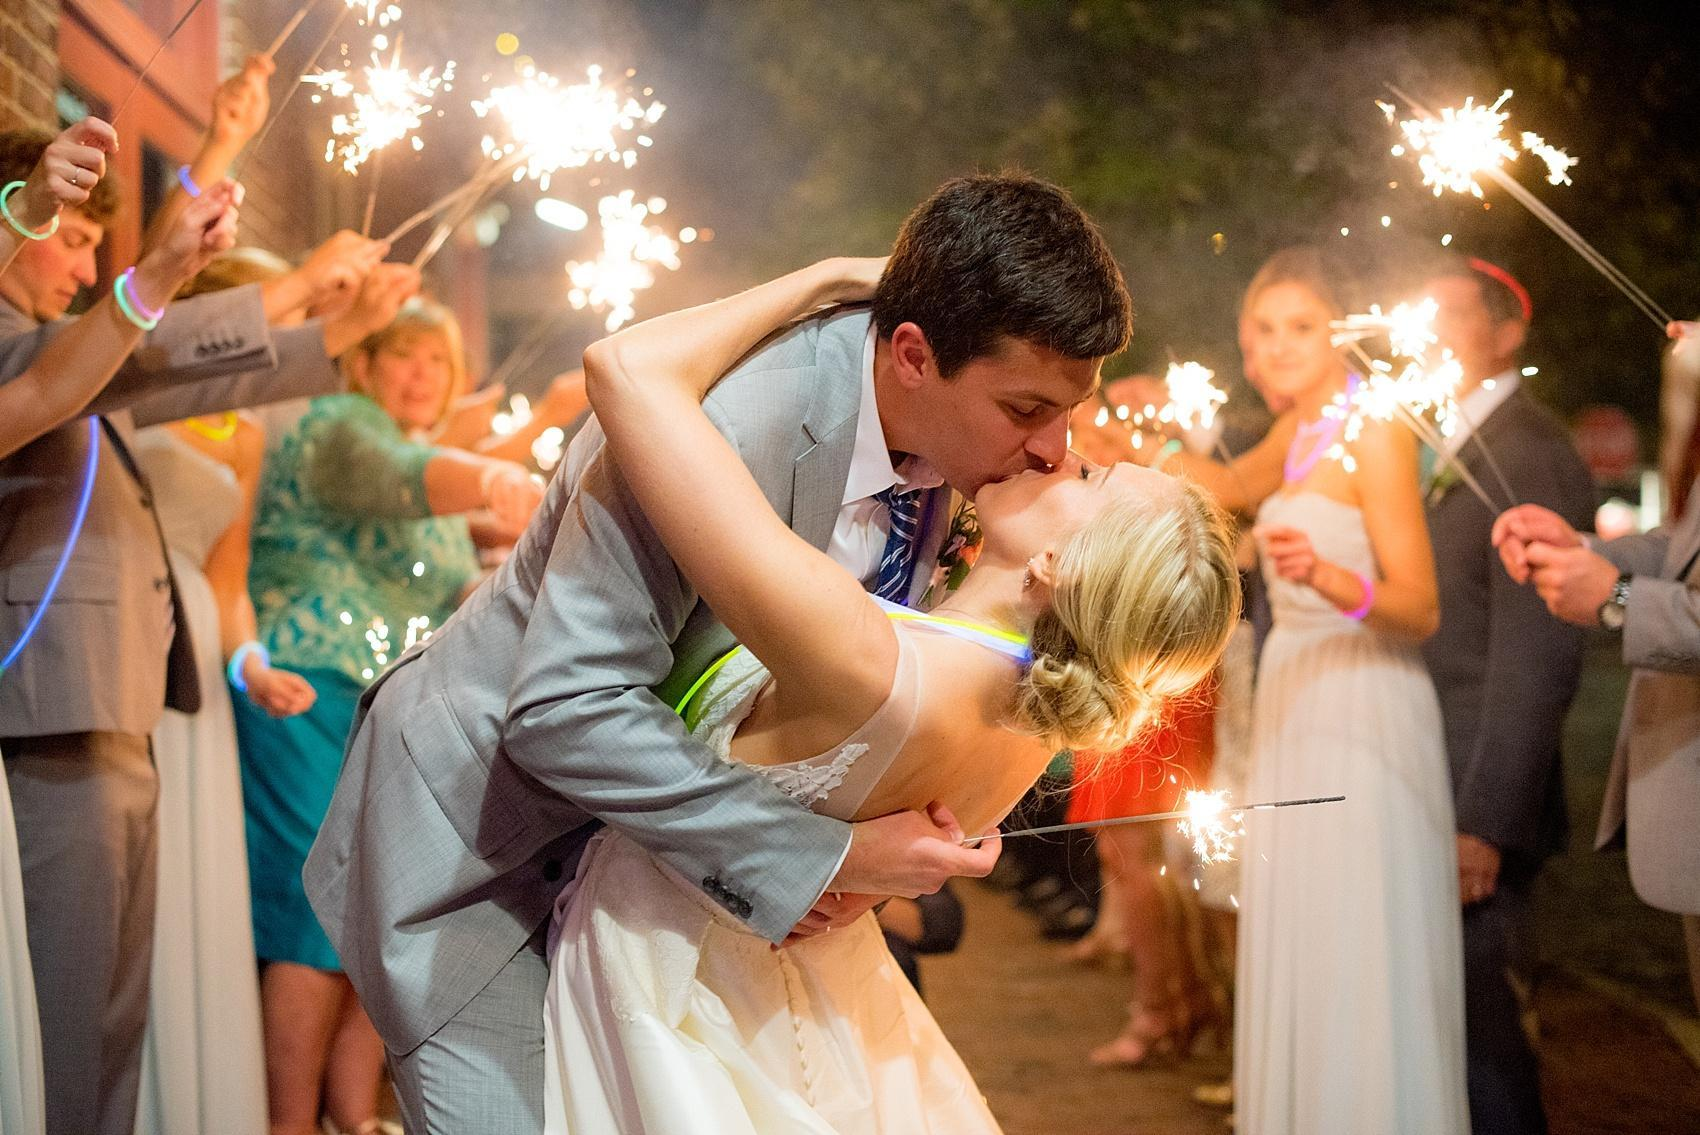 Mikkel Paige Photography photos of a wedding in downtown Raleigh at Market Hall, North Carolina. Sparkler sendoff for the couple's exit!